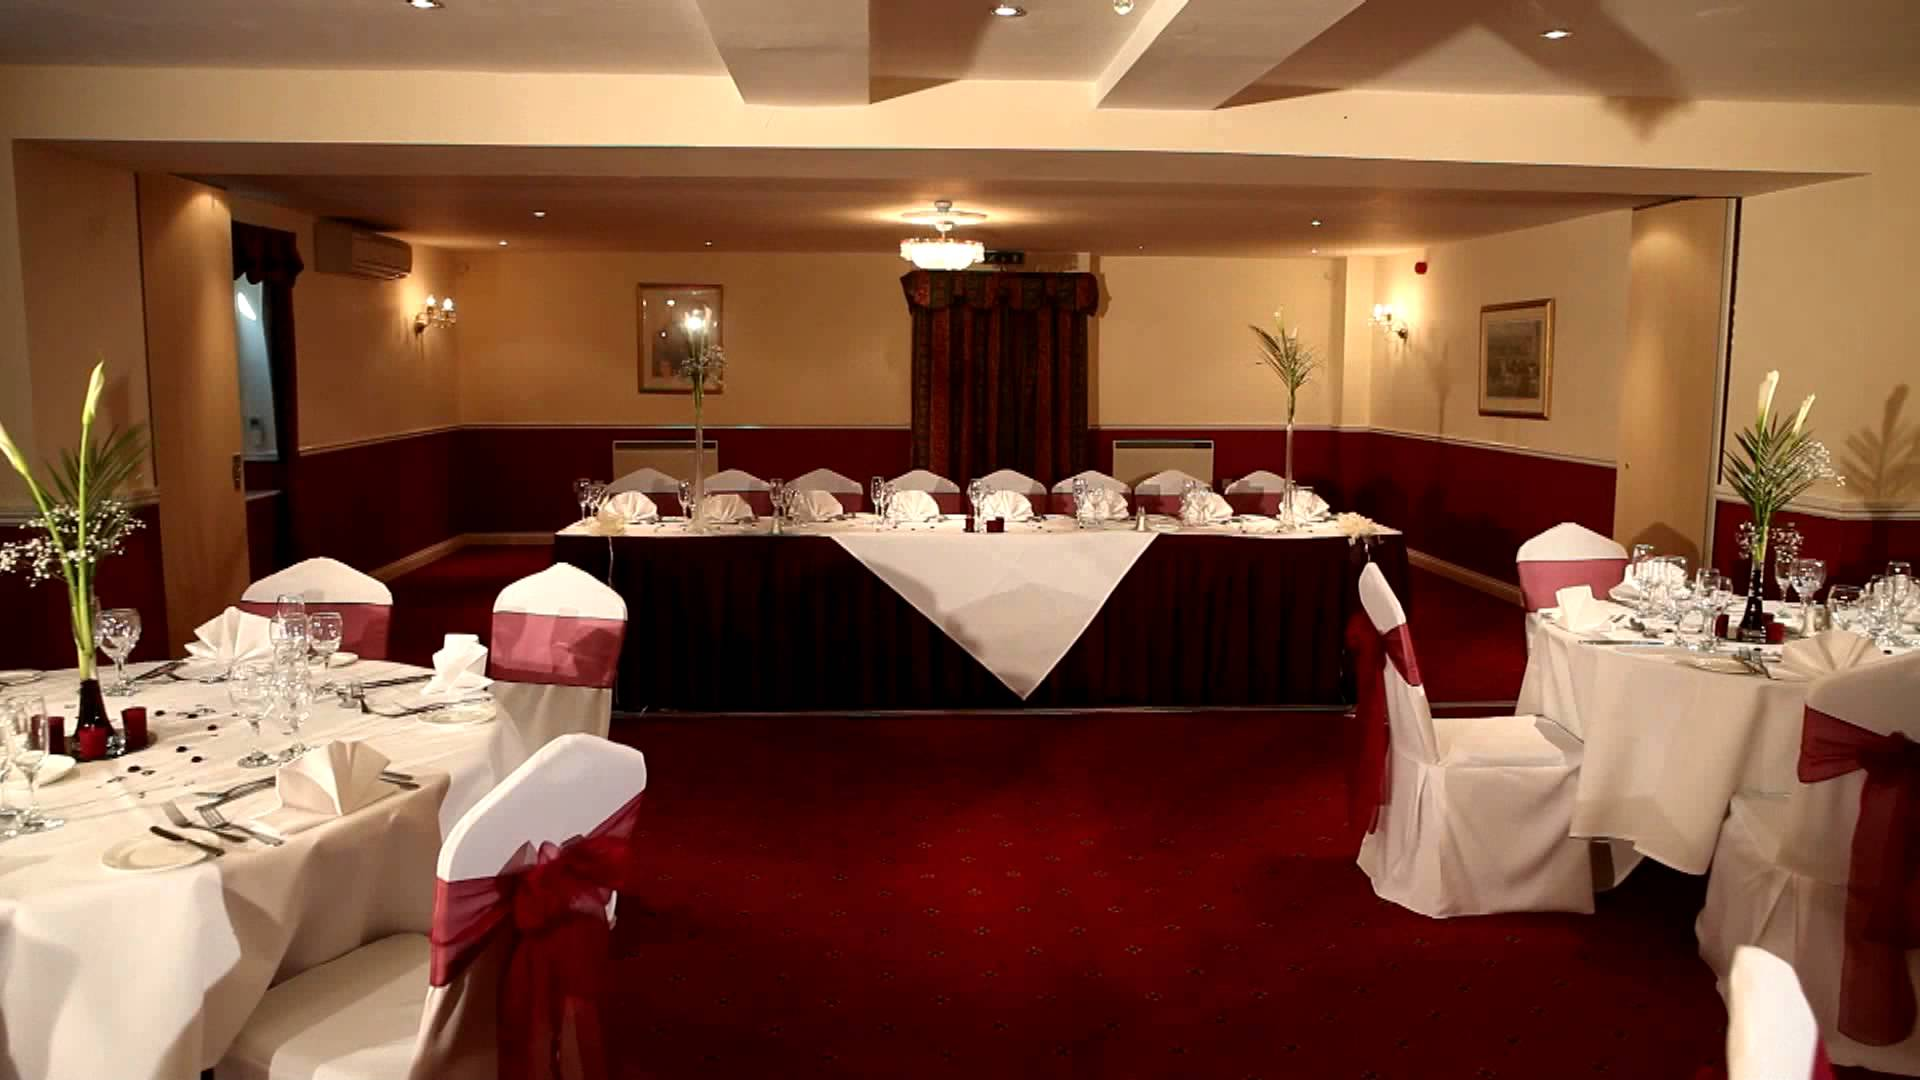 meeting rooms at best western claydon country house hotel, 16-18